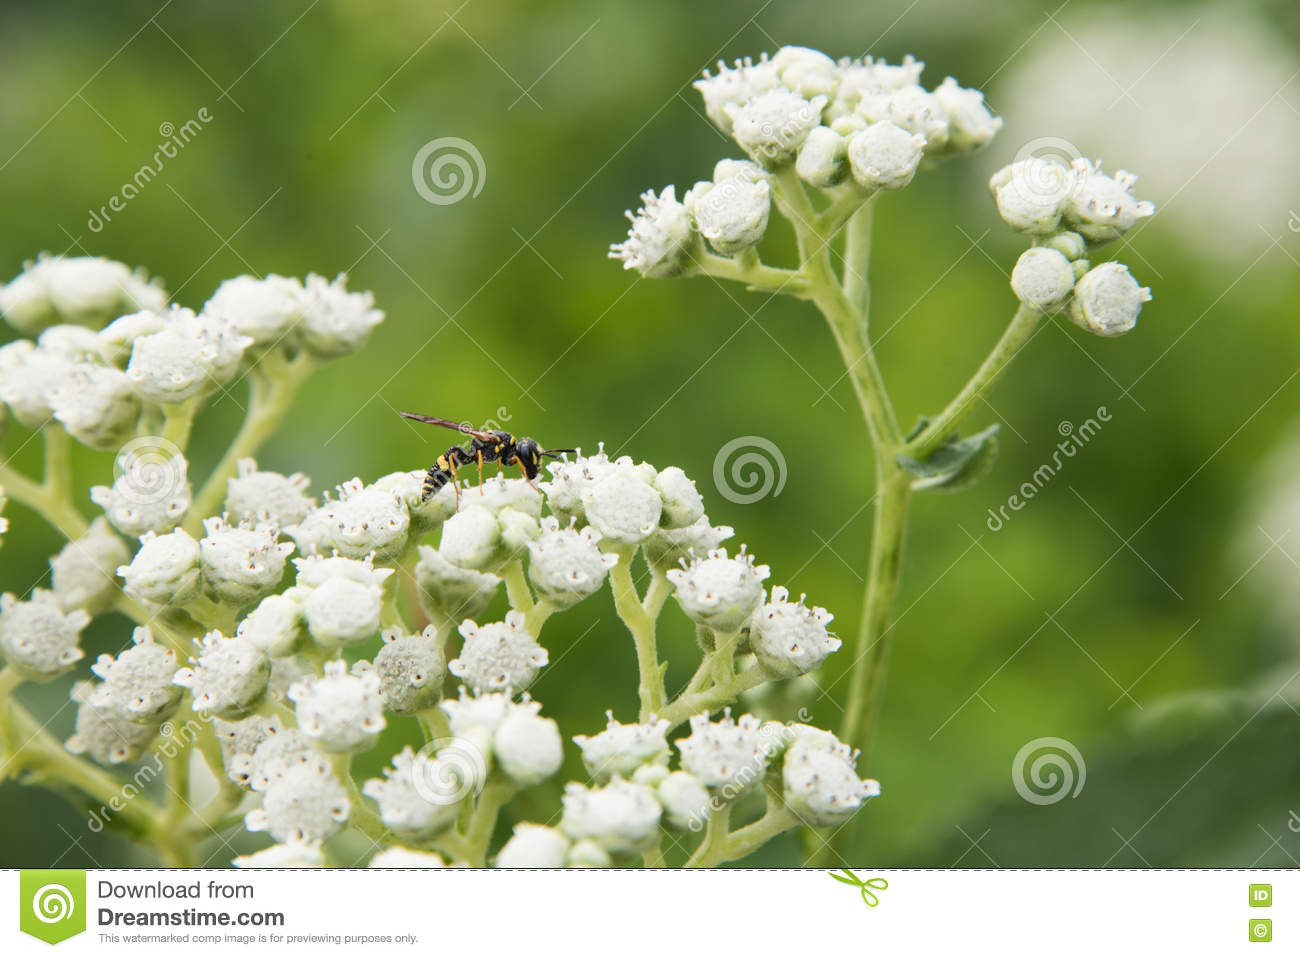 Close Up Of Small Budding Plant With White Flowers Stock Image